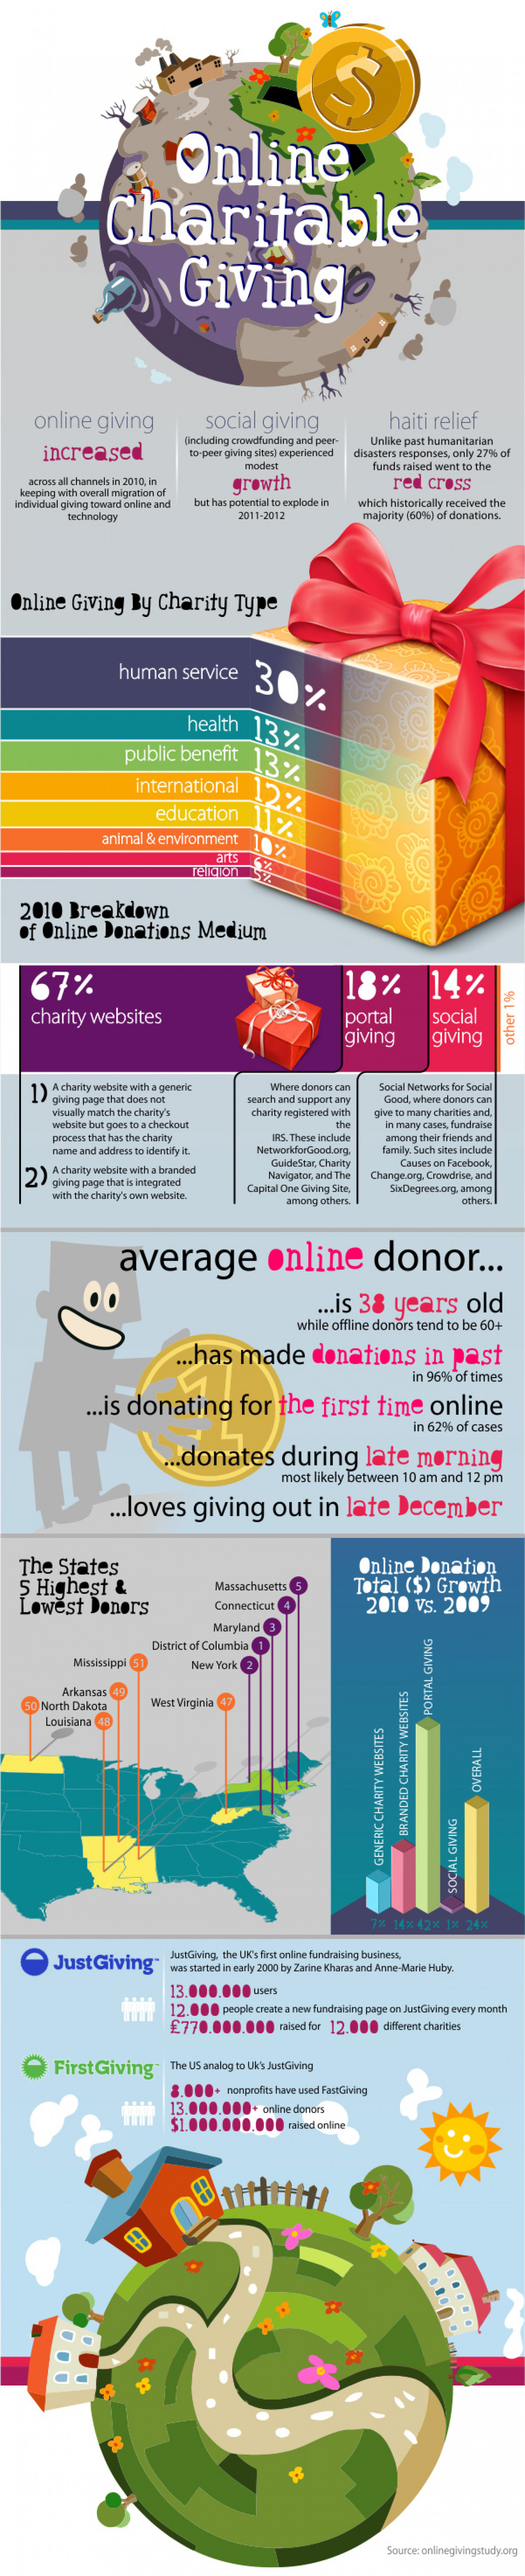 Online Charitable Giving Infographic